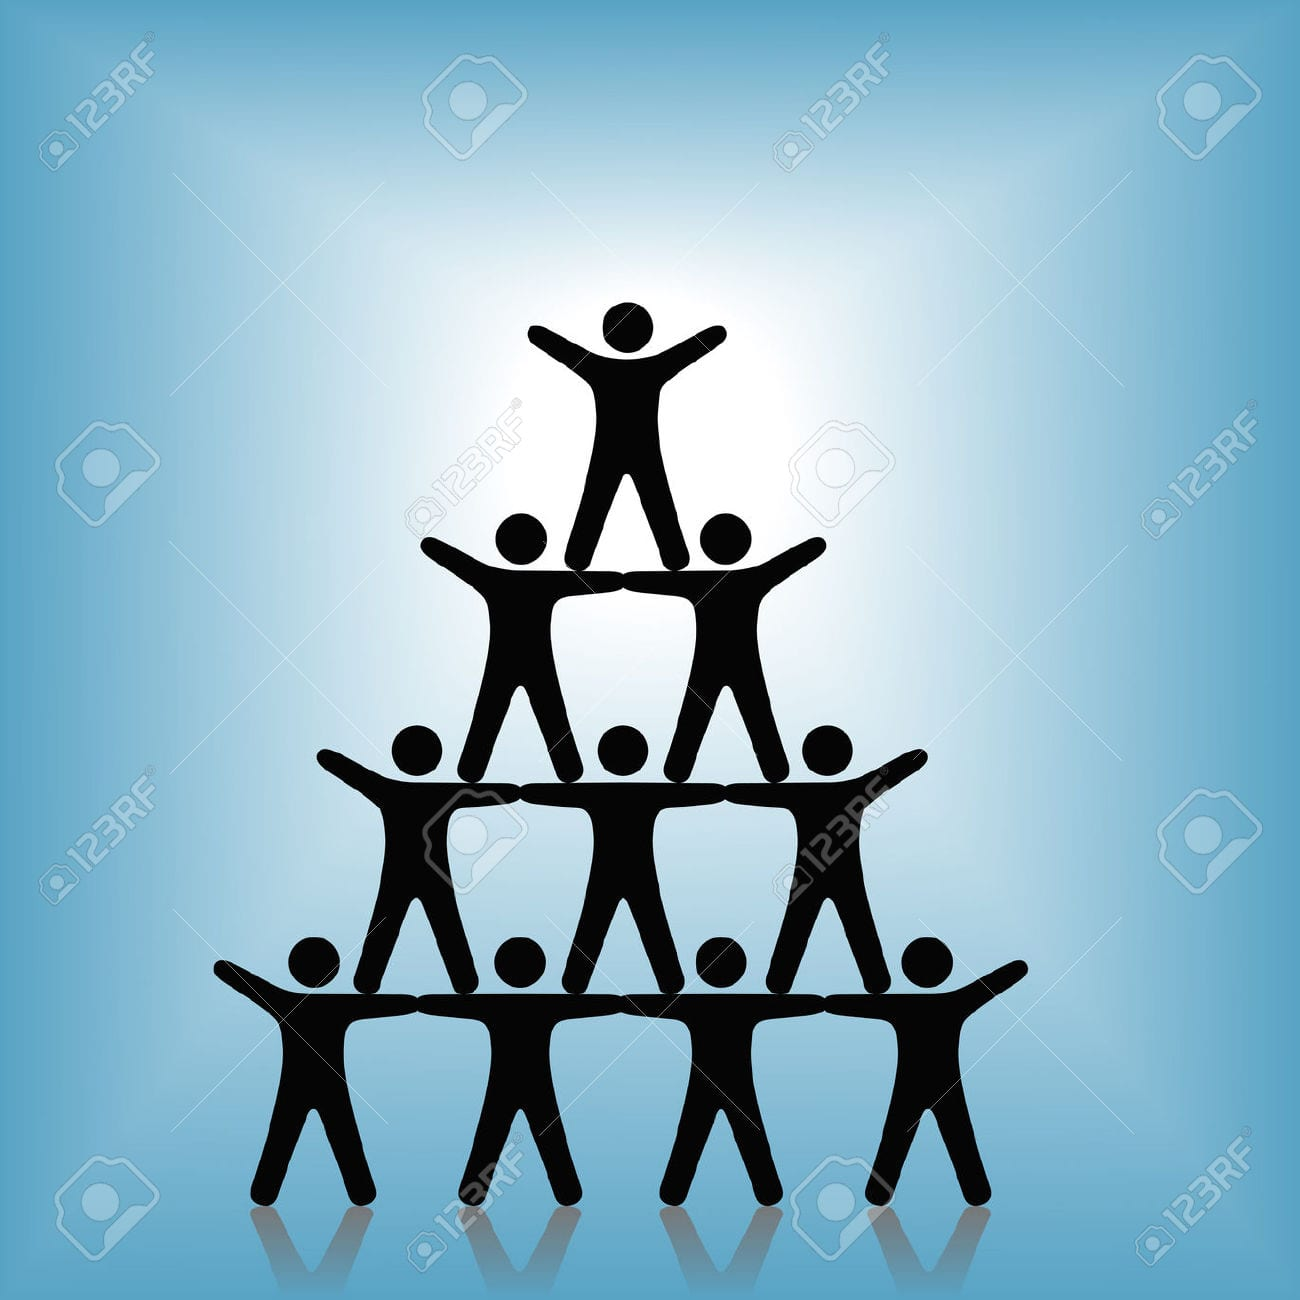 8 Creative Ways to Pose Large Groups of 10+ | Improve ...  |Group Cooperation